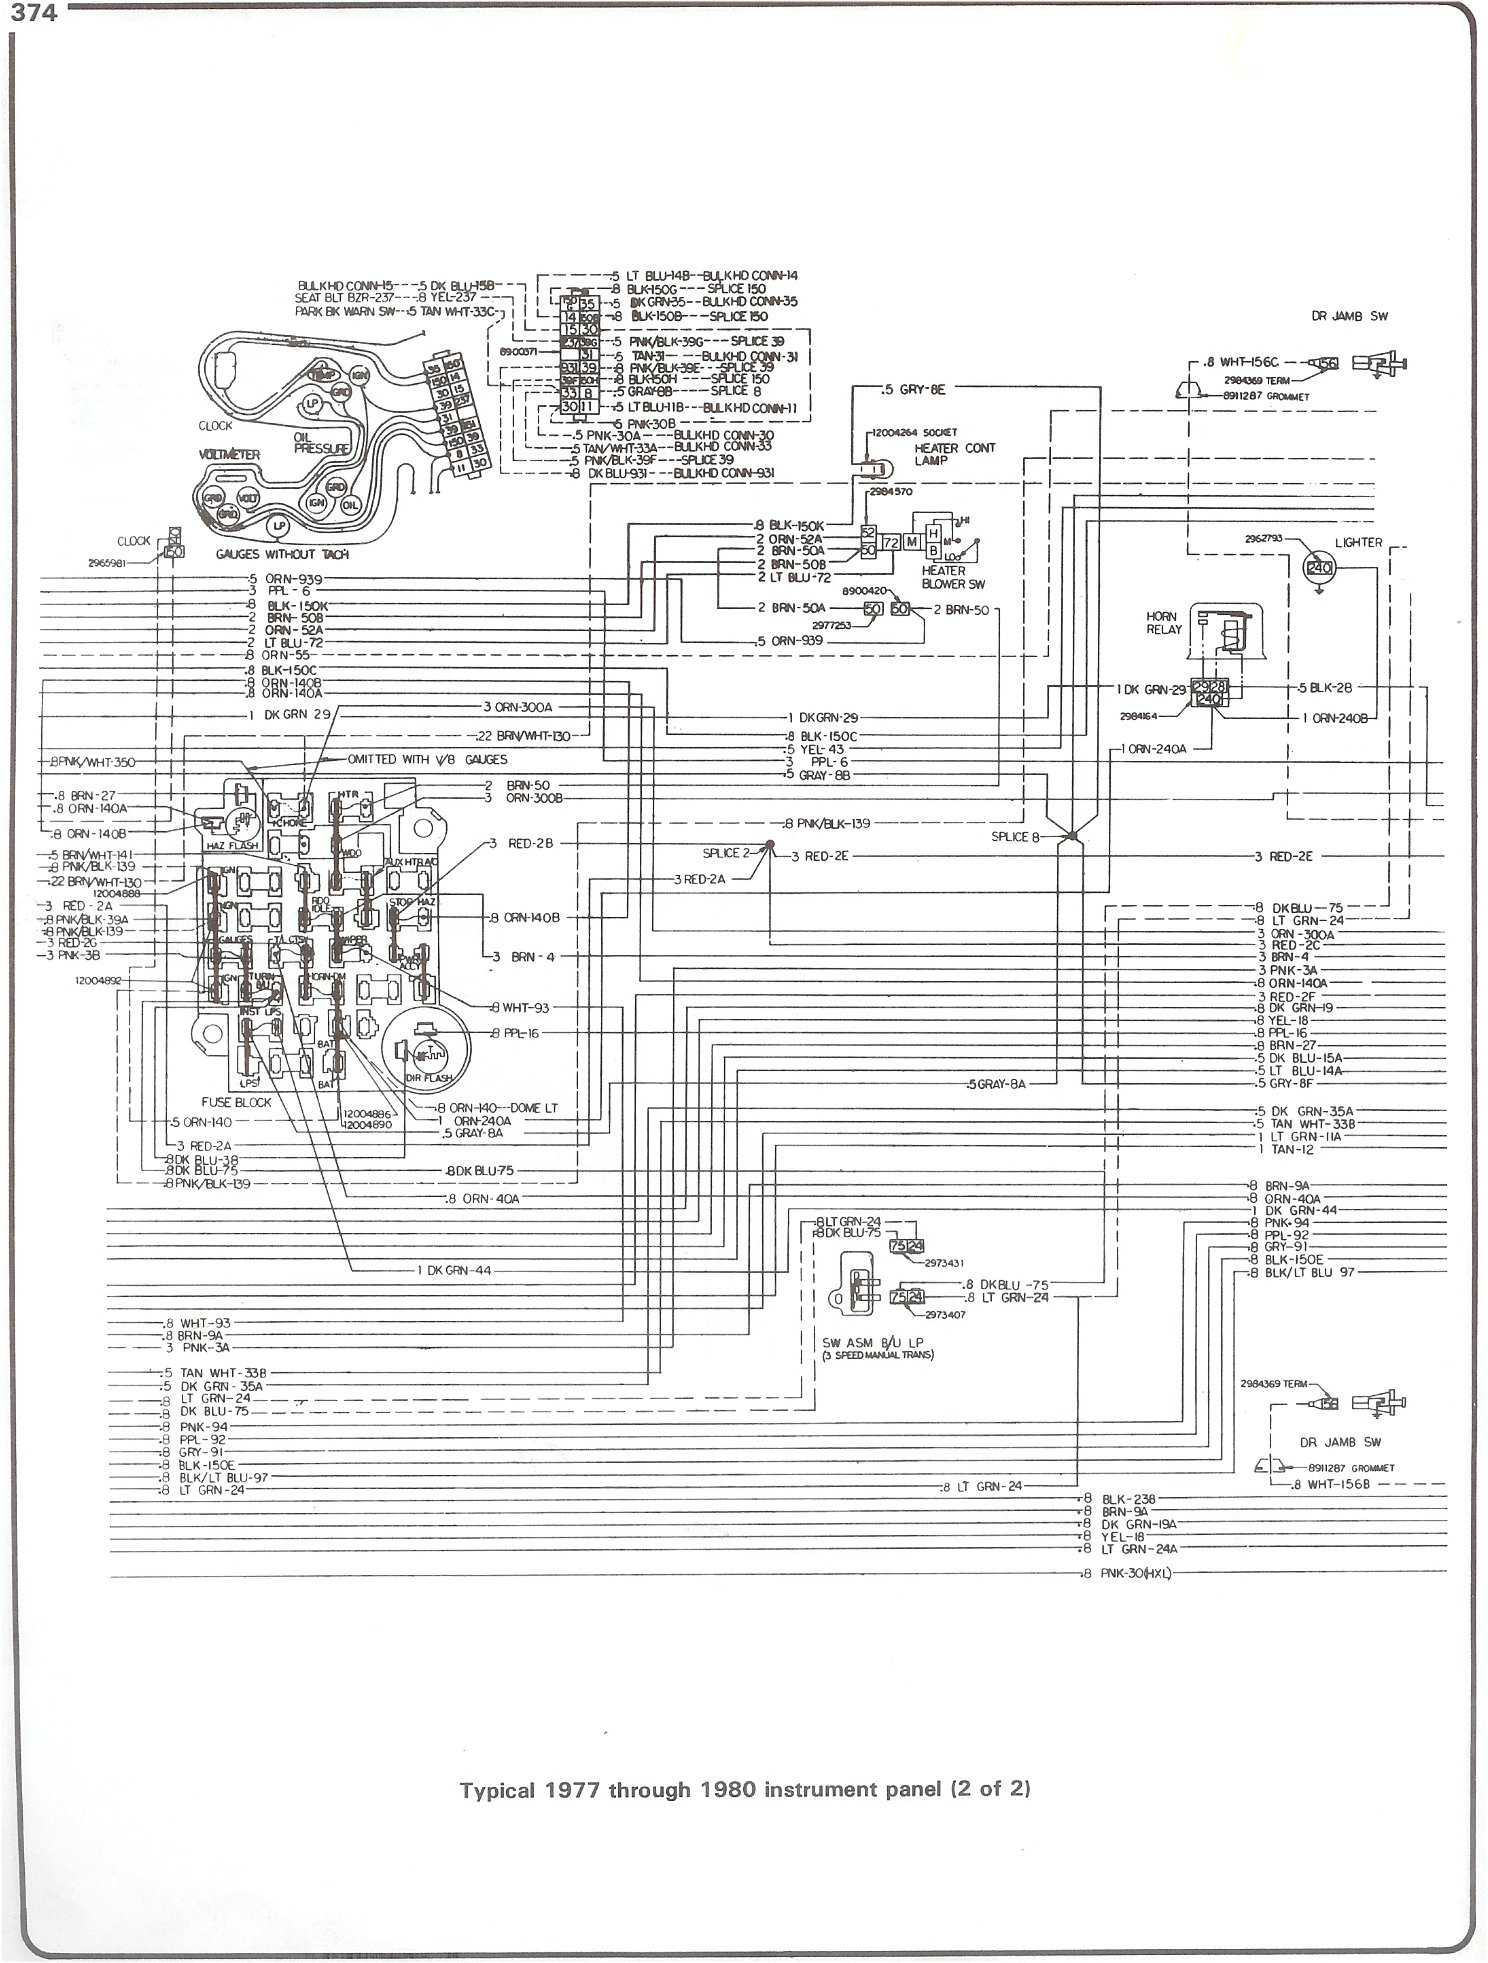 1972 Plymouth Duster Fuse Box Diagram Wiring Library 1975 Valiant Chevy P30 Data Schema Van 78